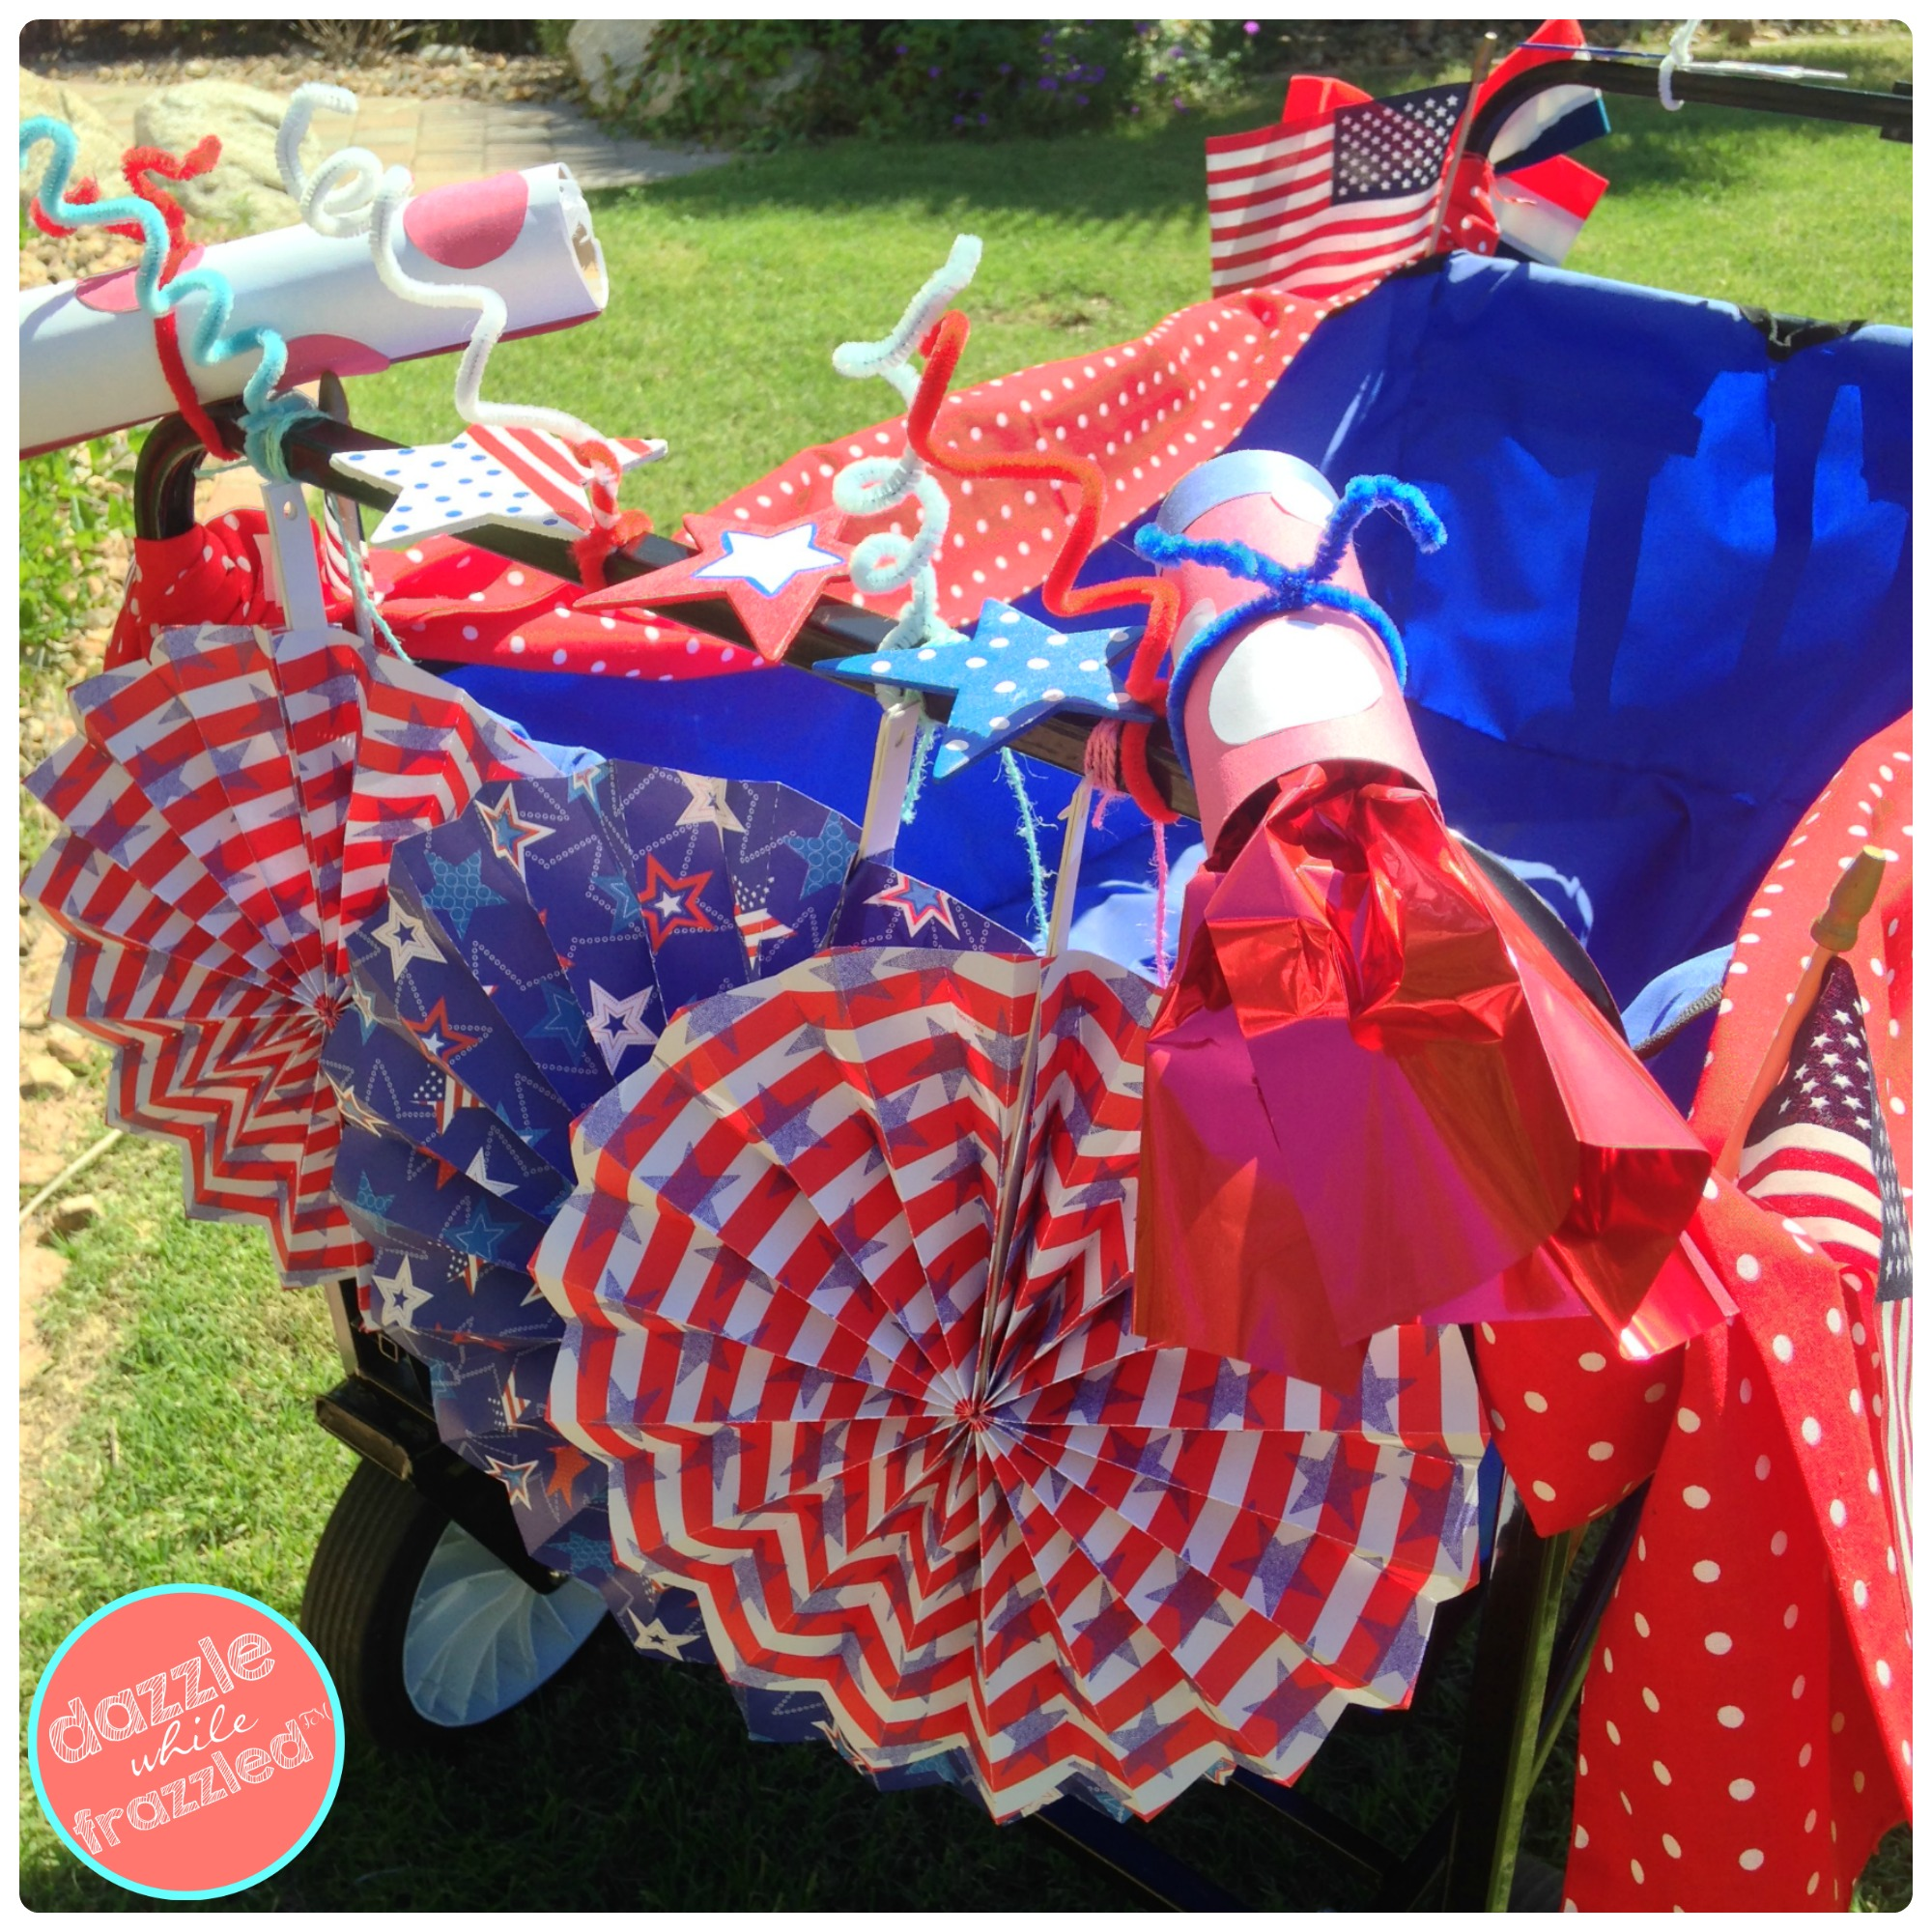 How To Decorate Fun Patriotic Wagon For July 4th Parade Dazzle While Frazzled